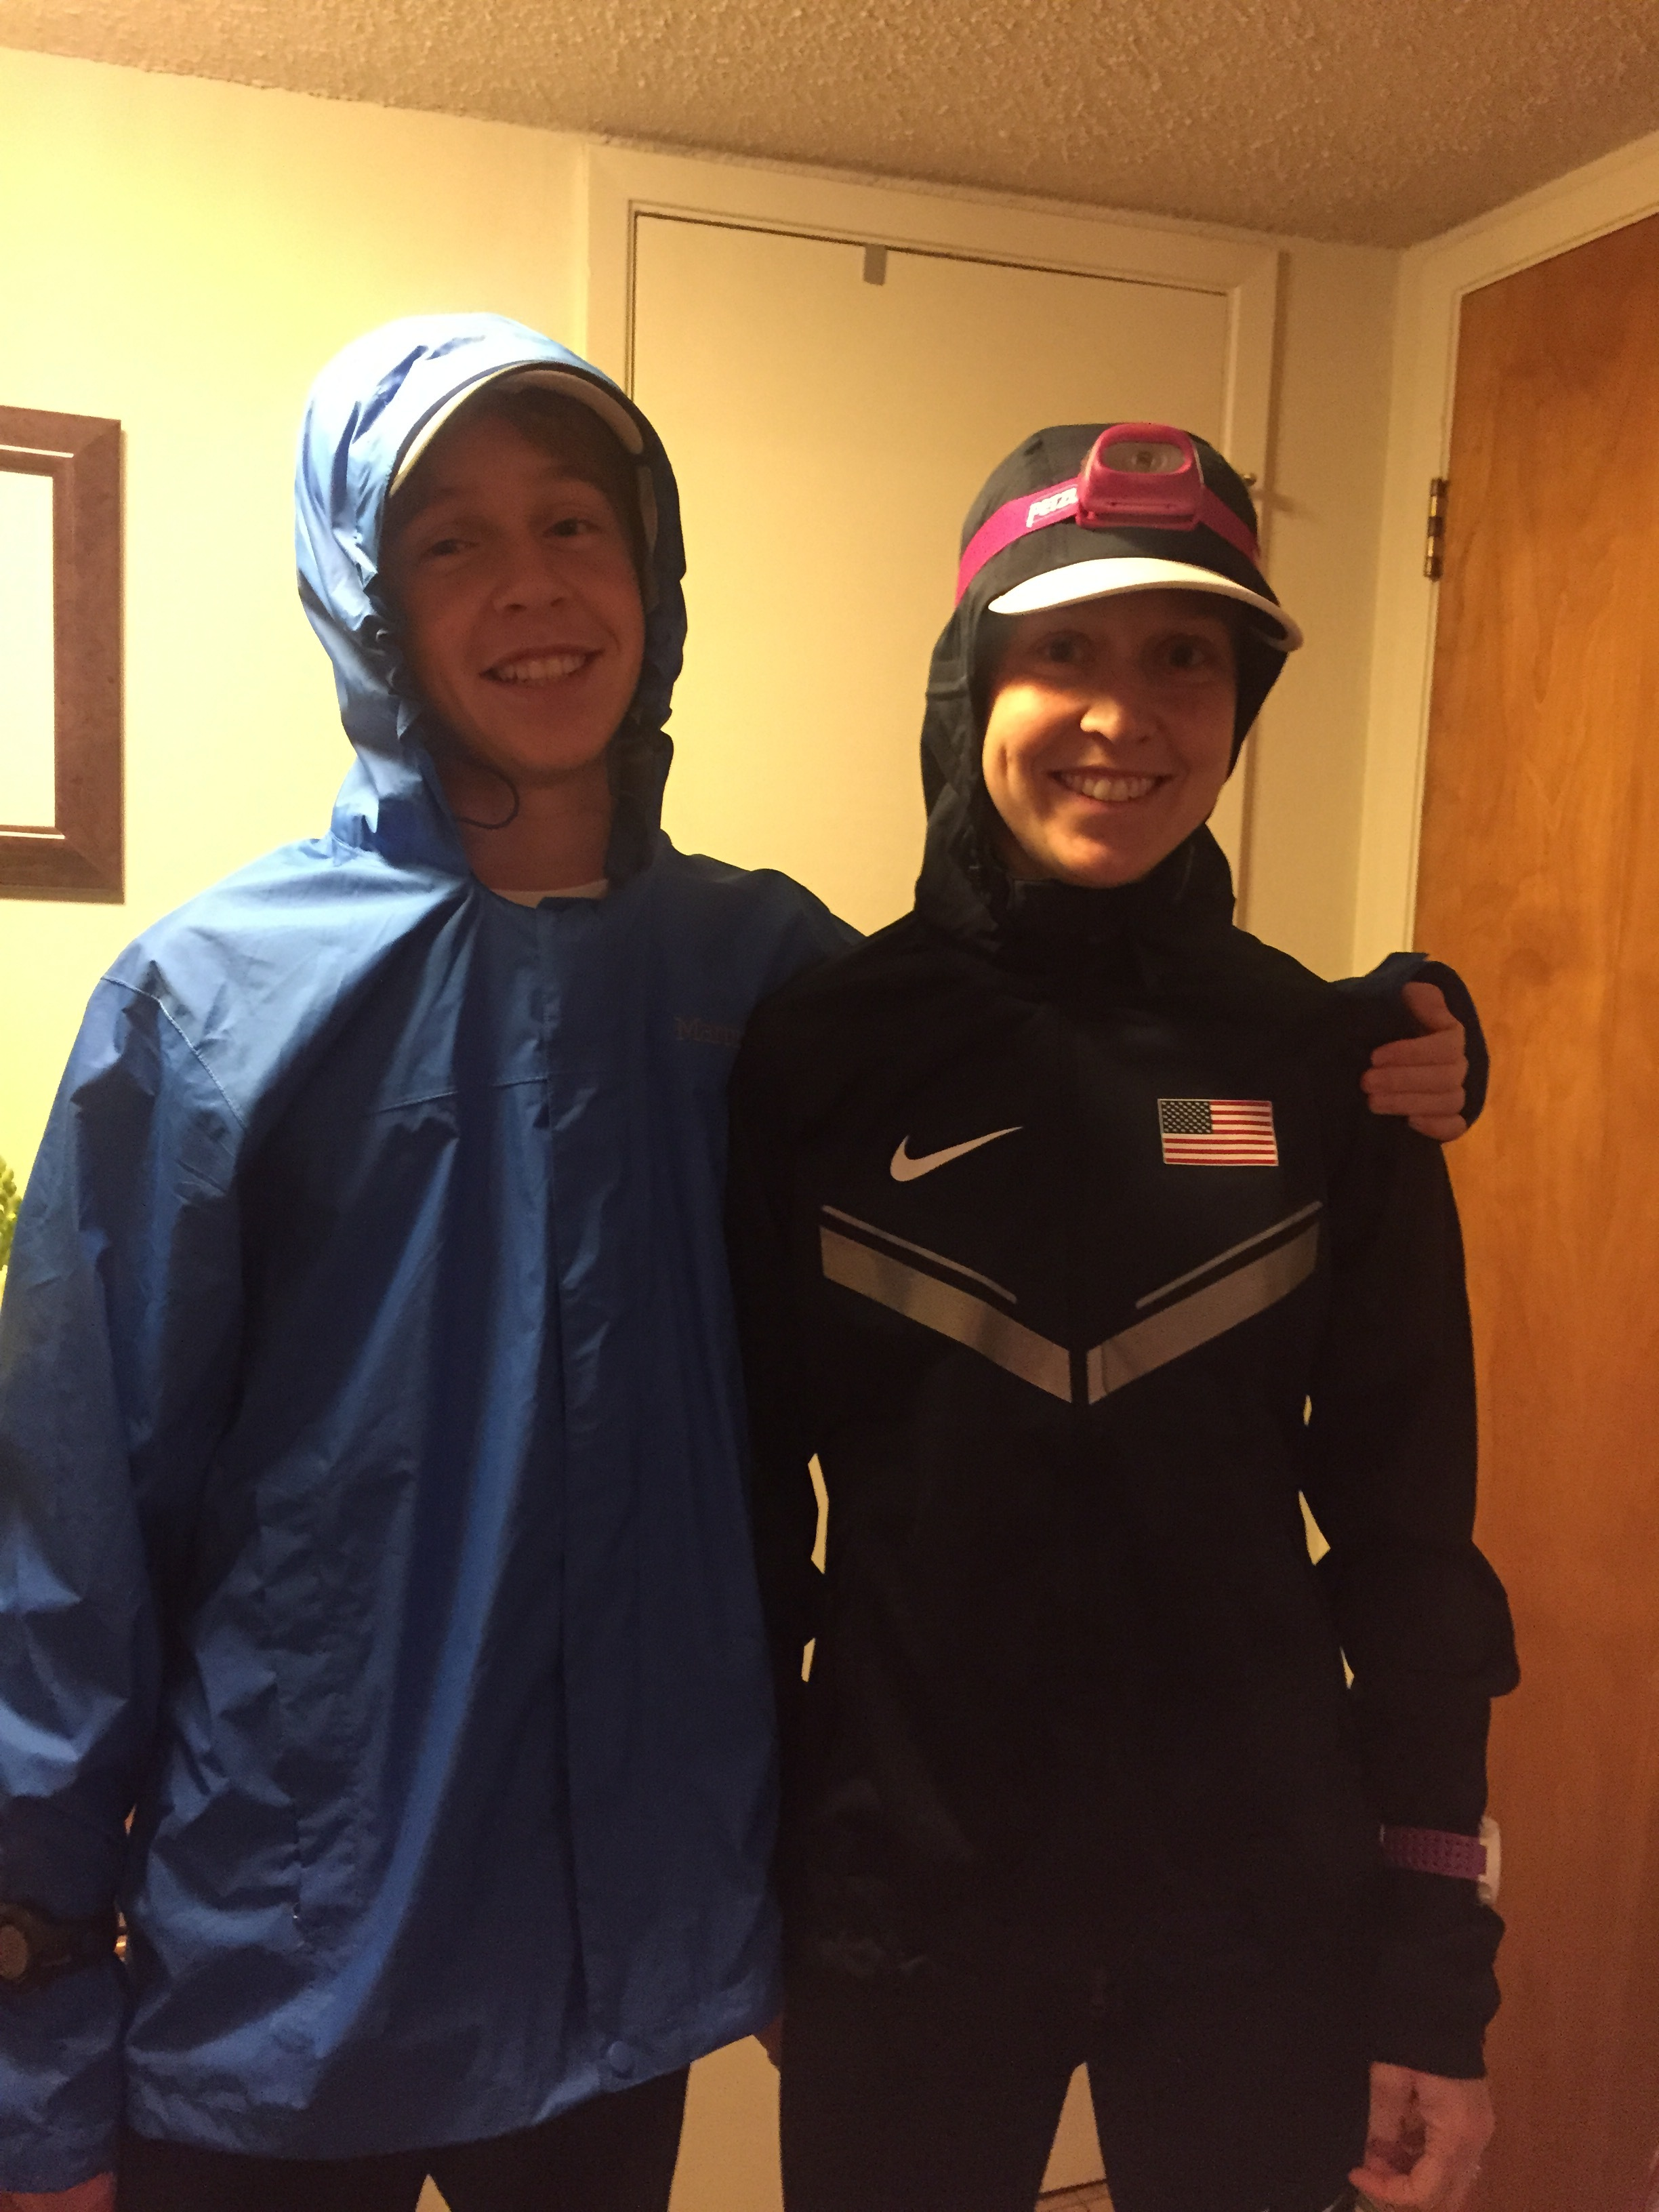 Getting out the door for a dark + rainy double with Bryce, my 15 year-old brother.